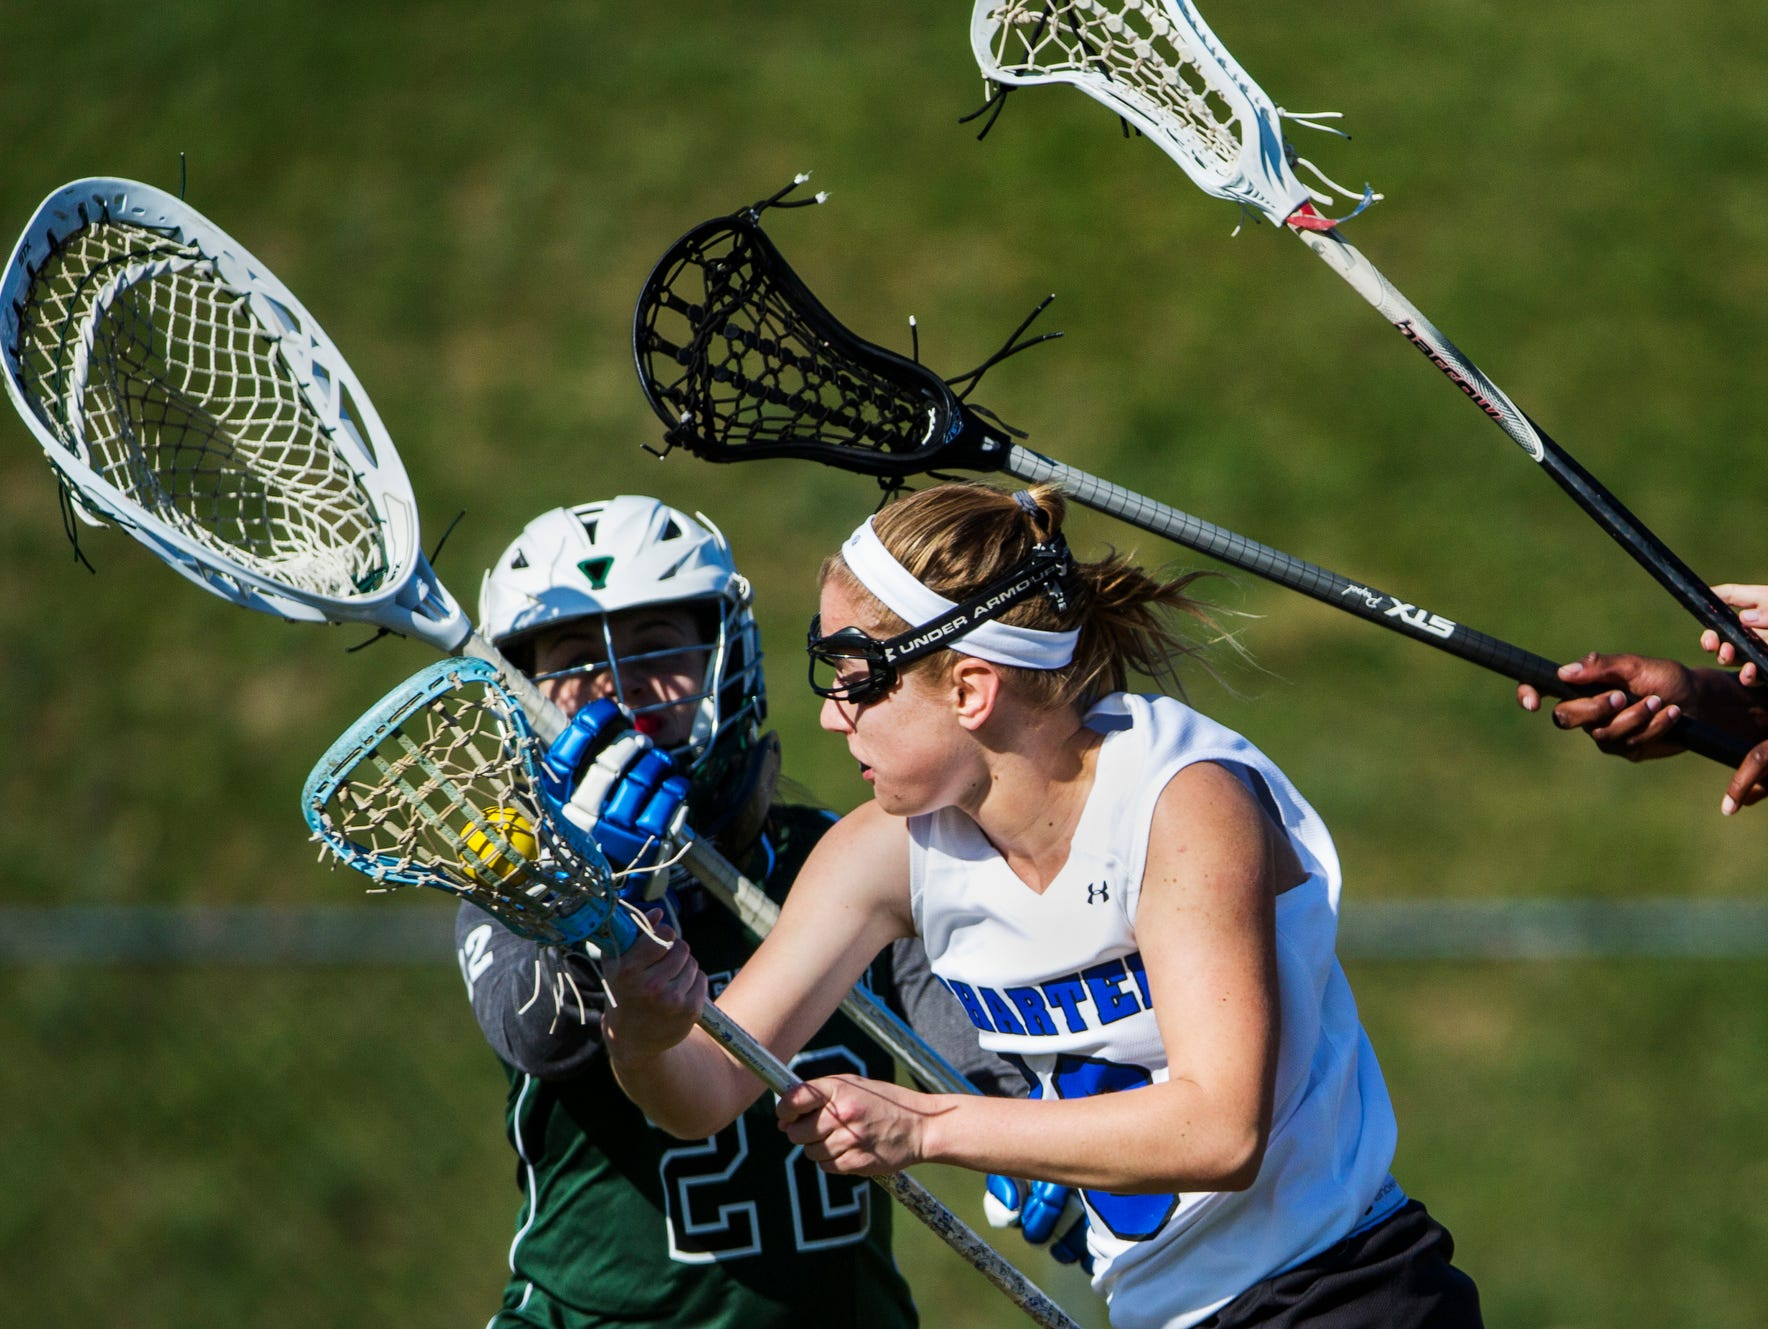 Charter's Jordan Wood cuts toward the goal as a group of Tower Hill defenders, including goalie Ellie Wakefield (left), raise their sticks in defense in the second half of Charter's 10-9 win over Tower Hill at Charter School of Wilmington on Tuesday afternoon.